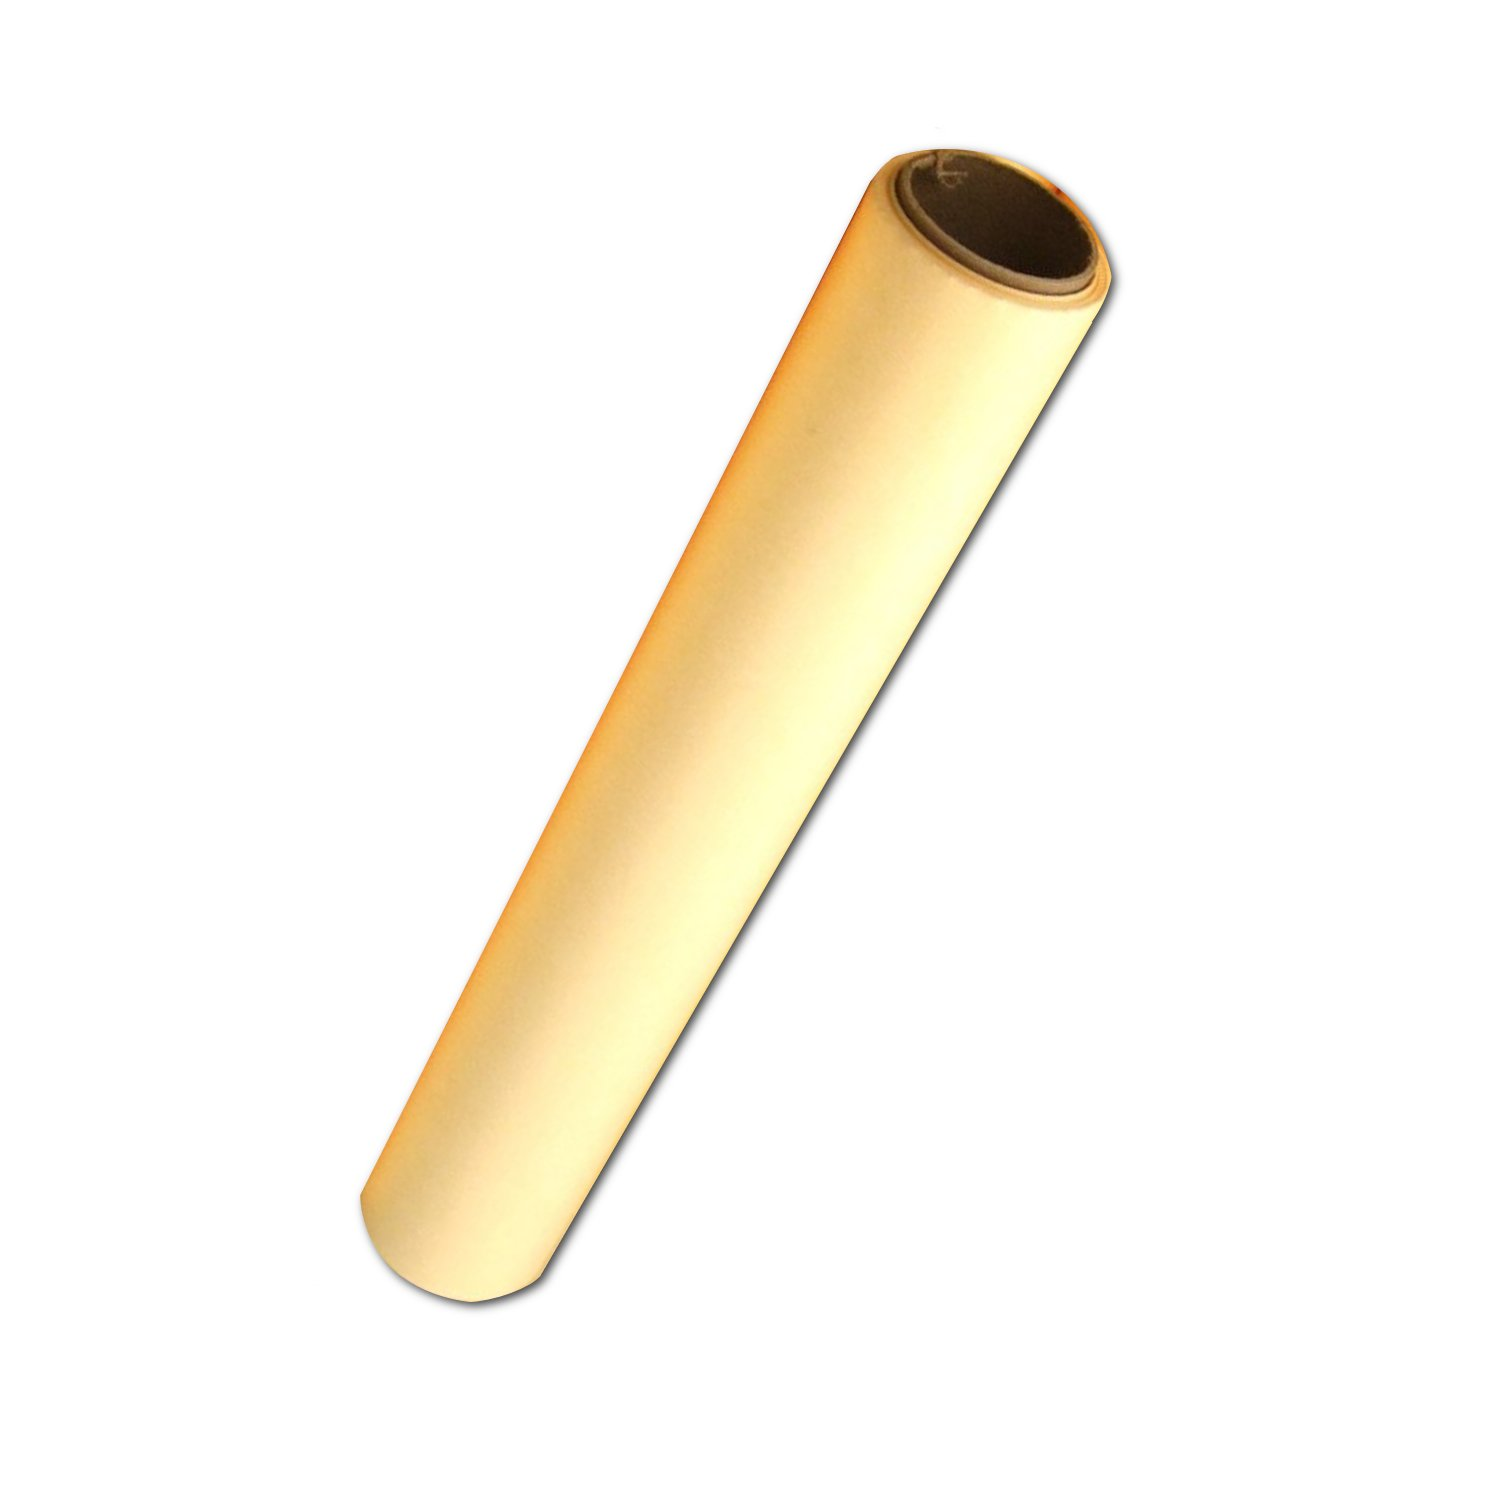 Bienfang Canary Sketching & Tracing Roll, 50 Yards X 24 inches, 7 lb, Canary Yellow, 1 Roll (341138)